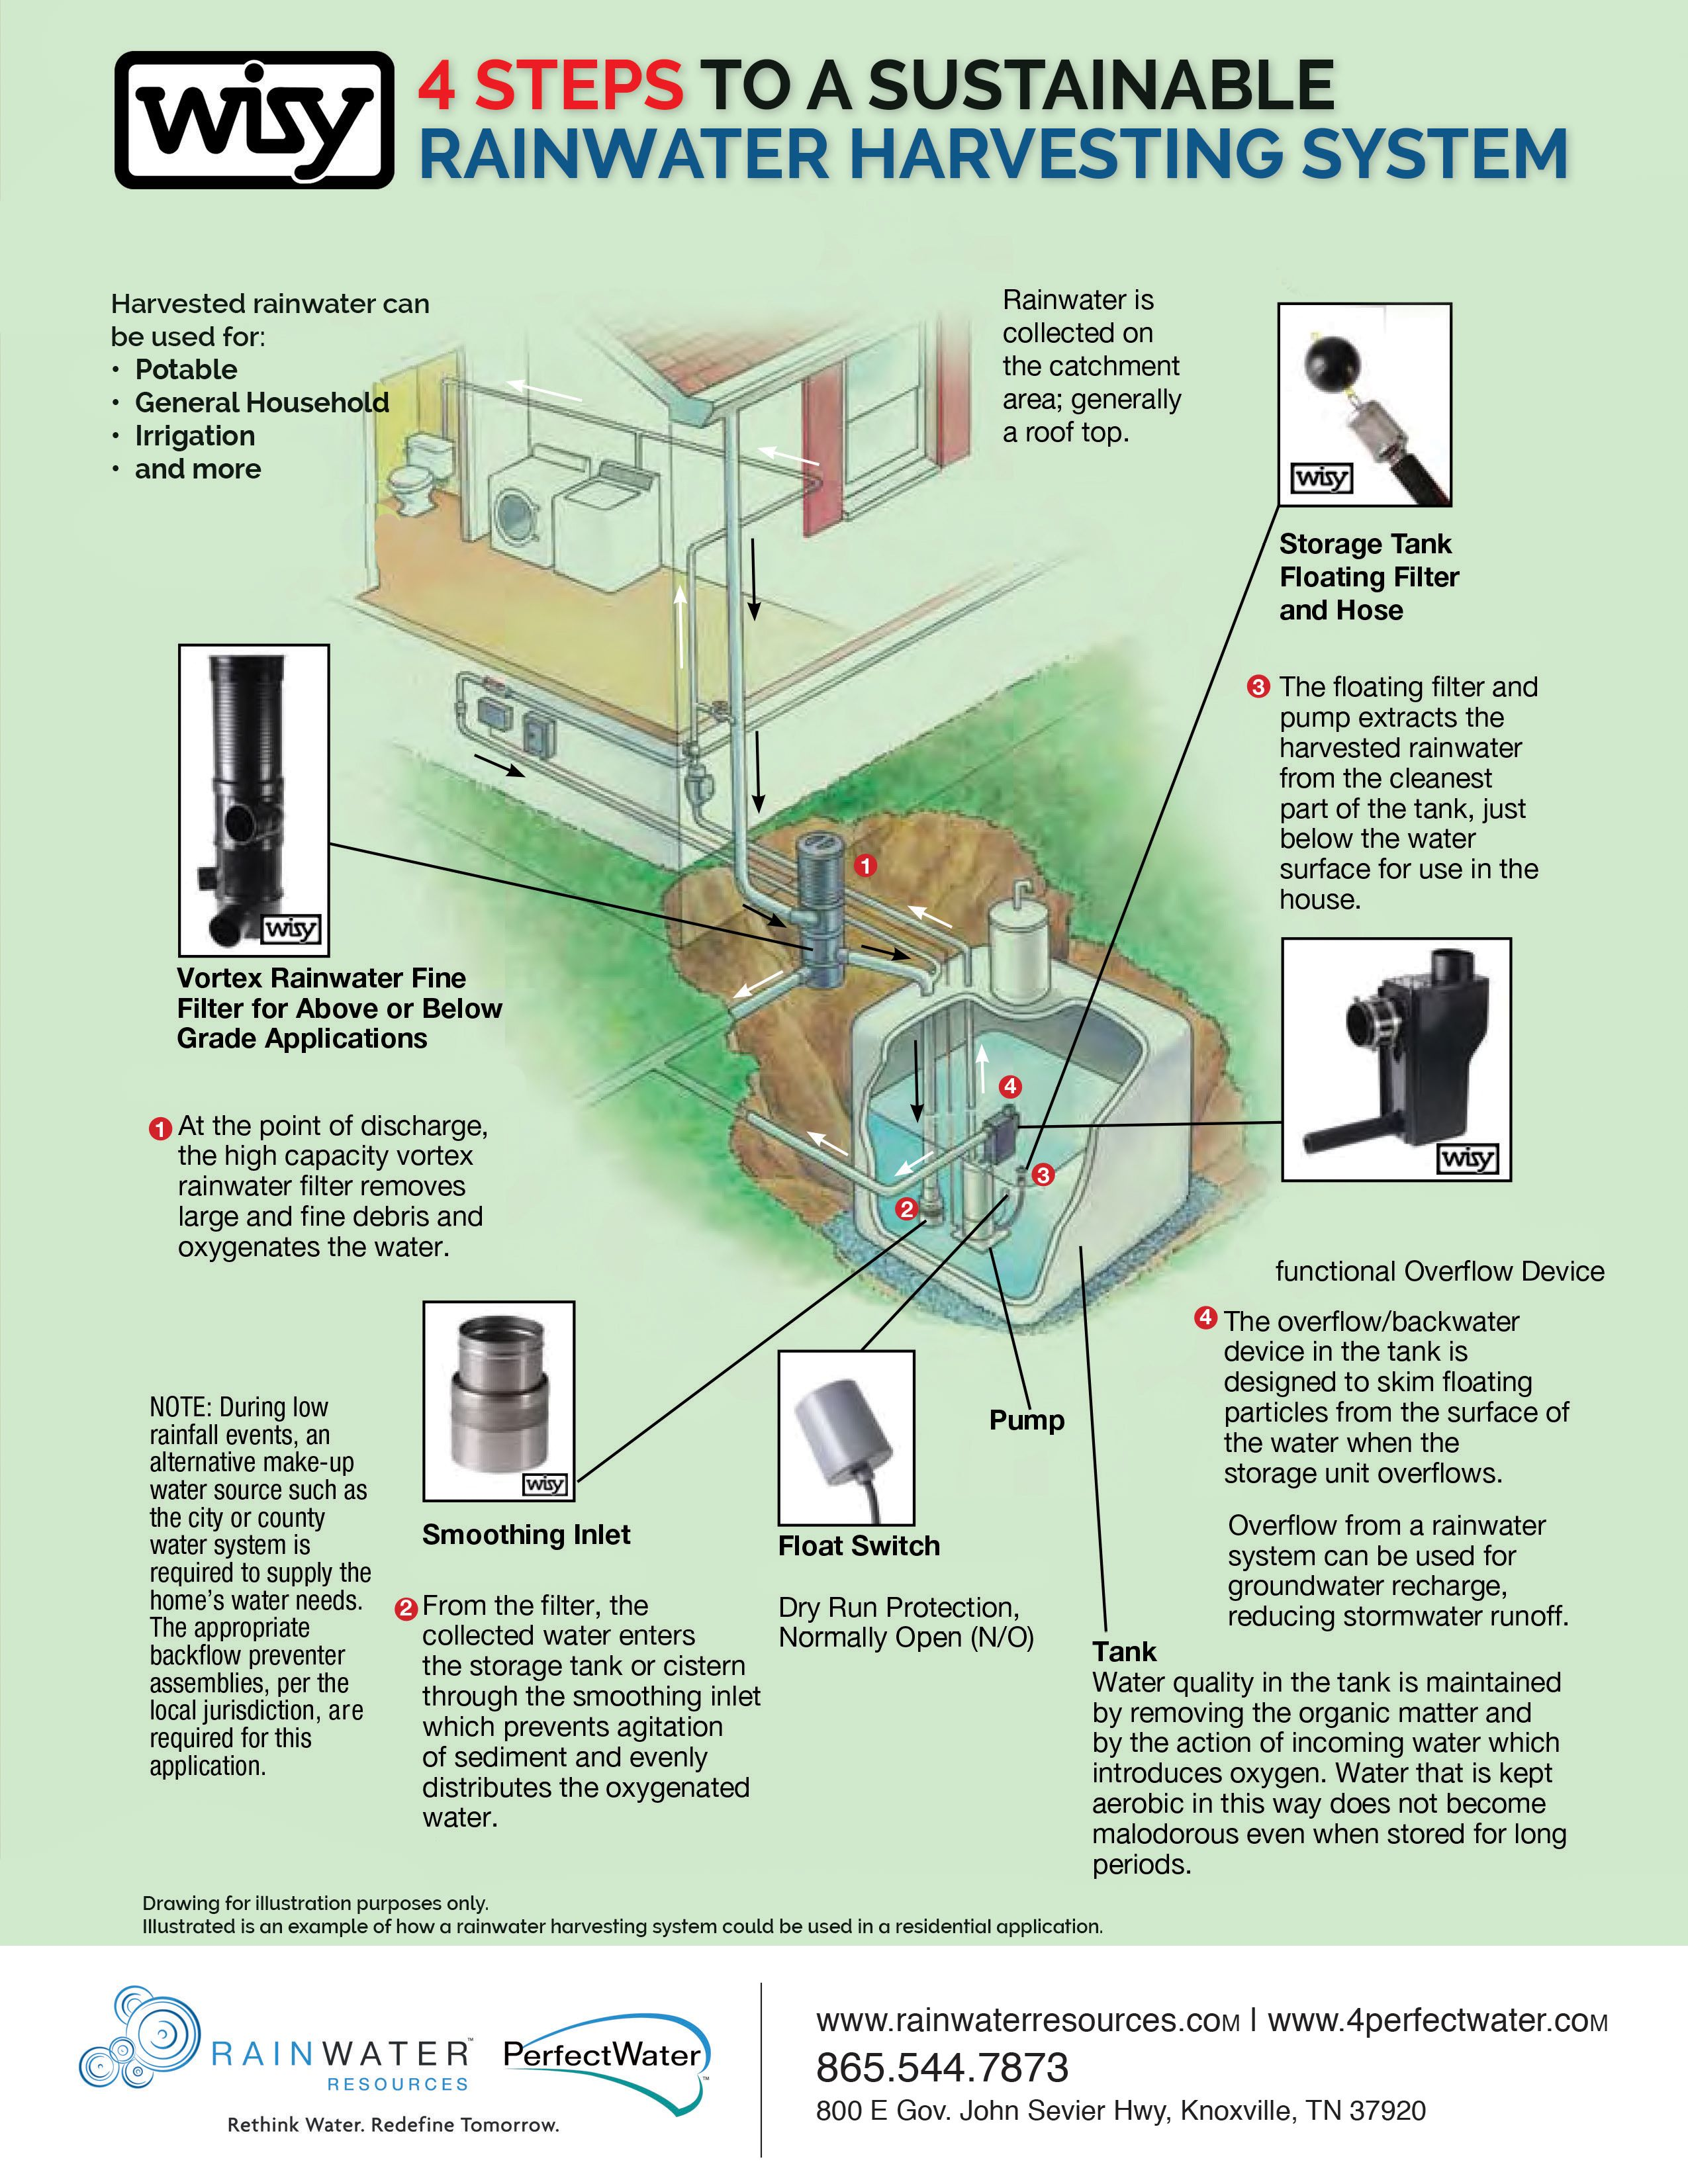 4 Steps To An Incredible Rainwater Harvesting System For The Home